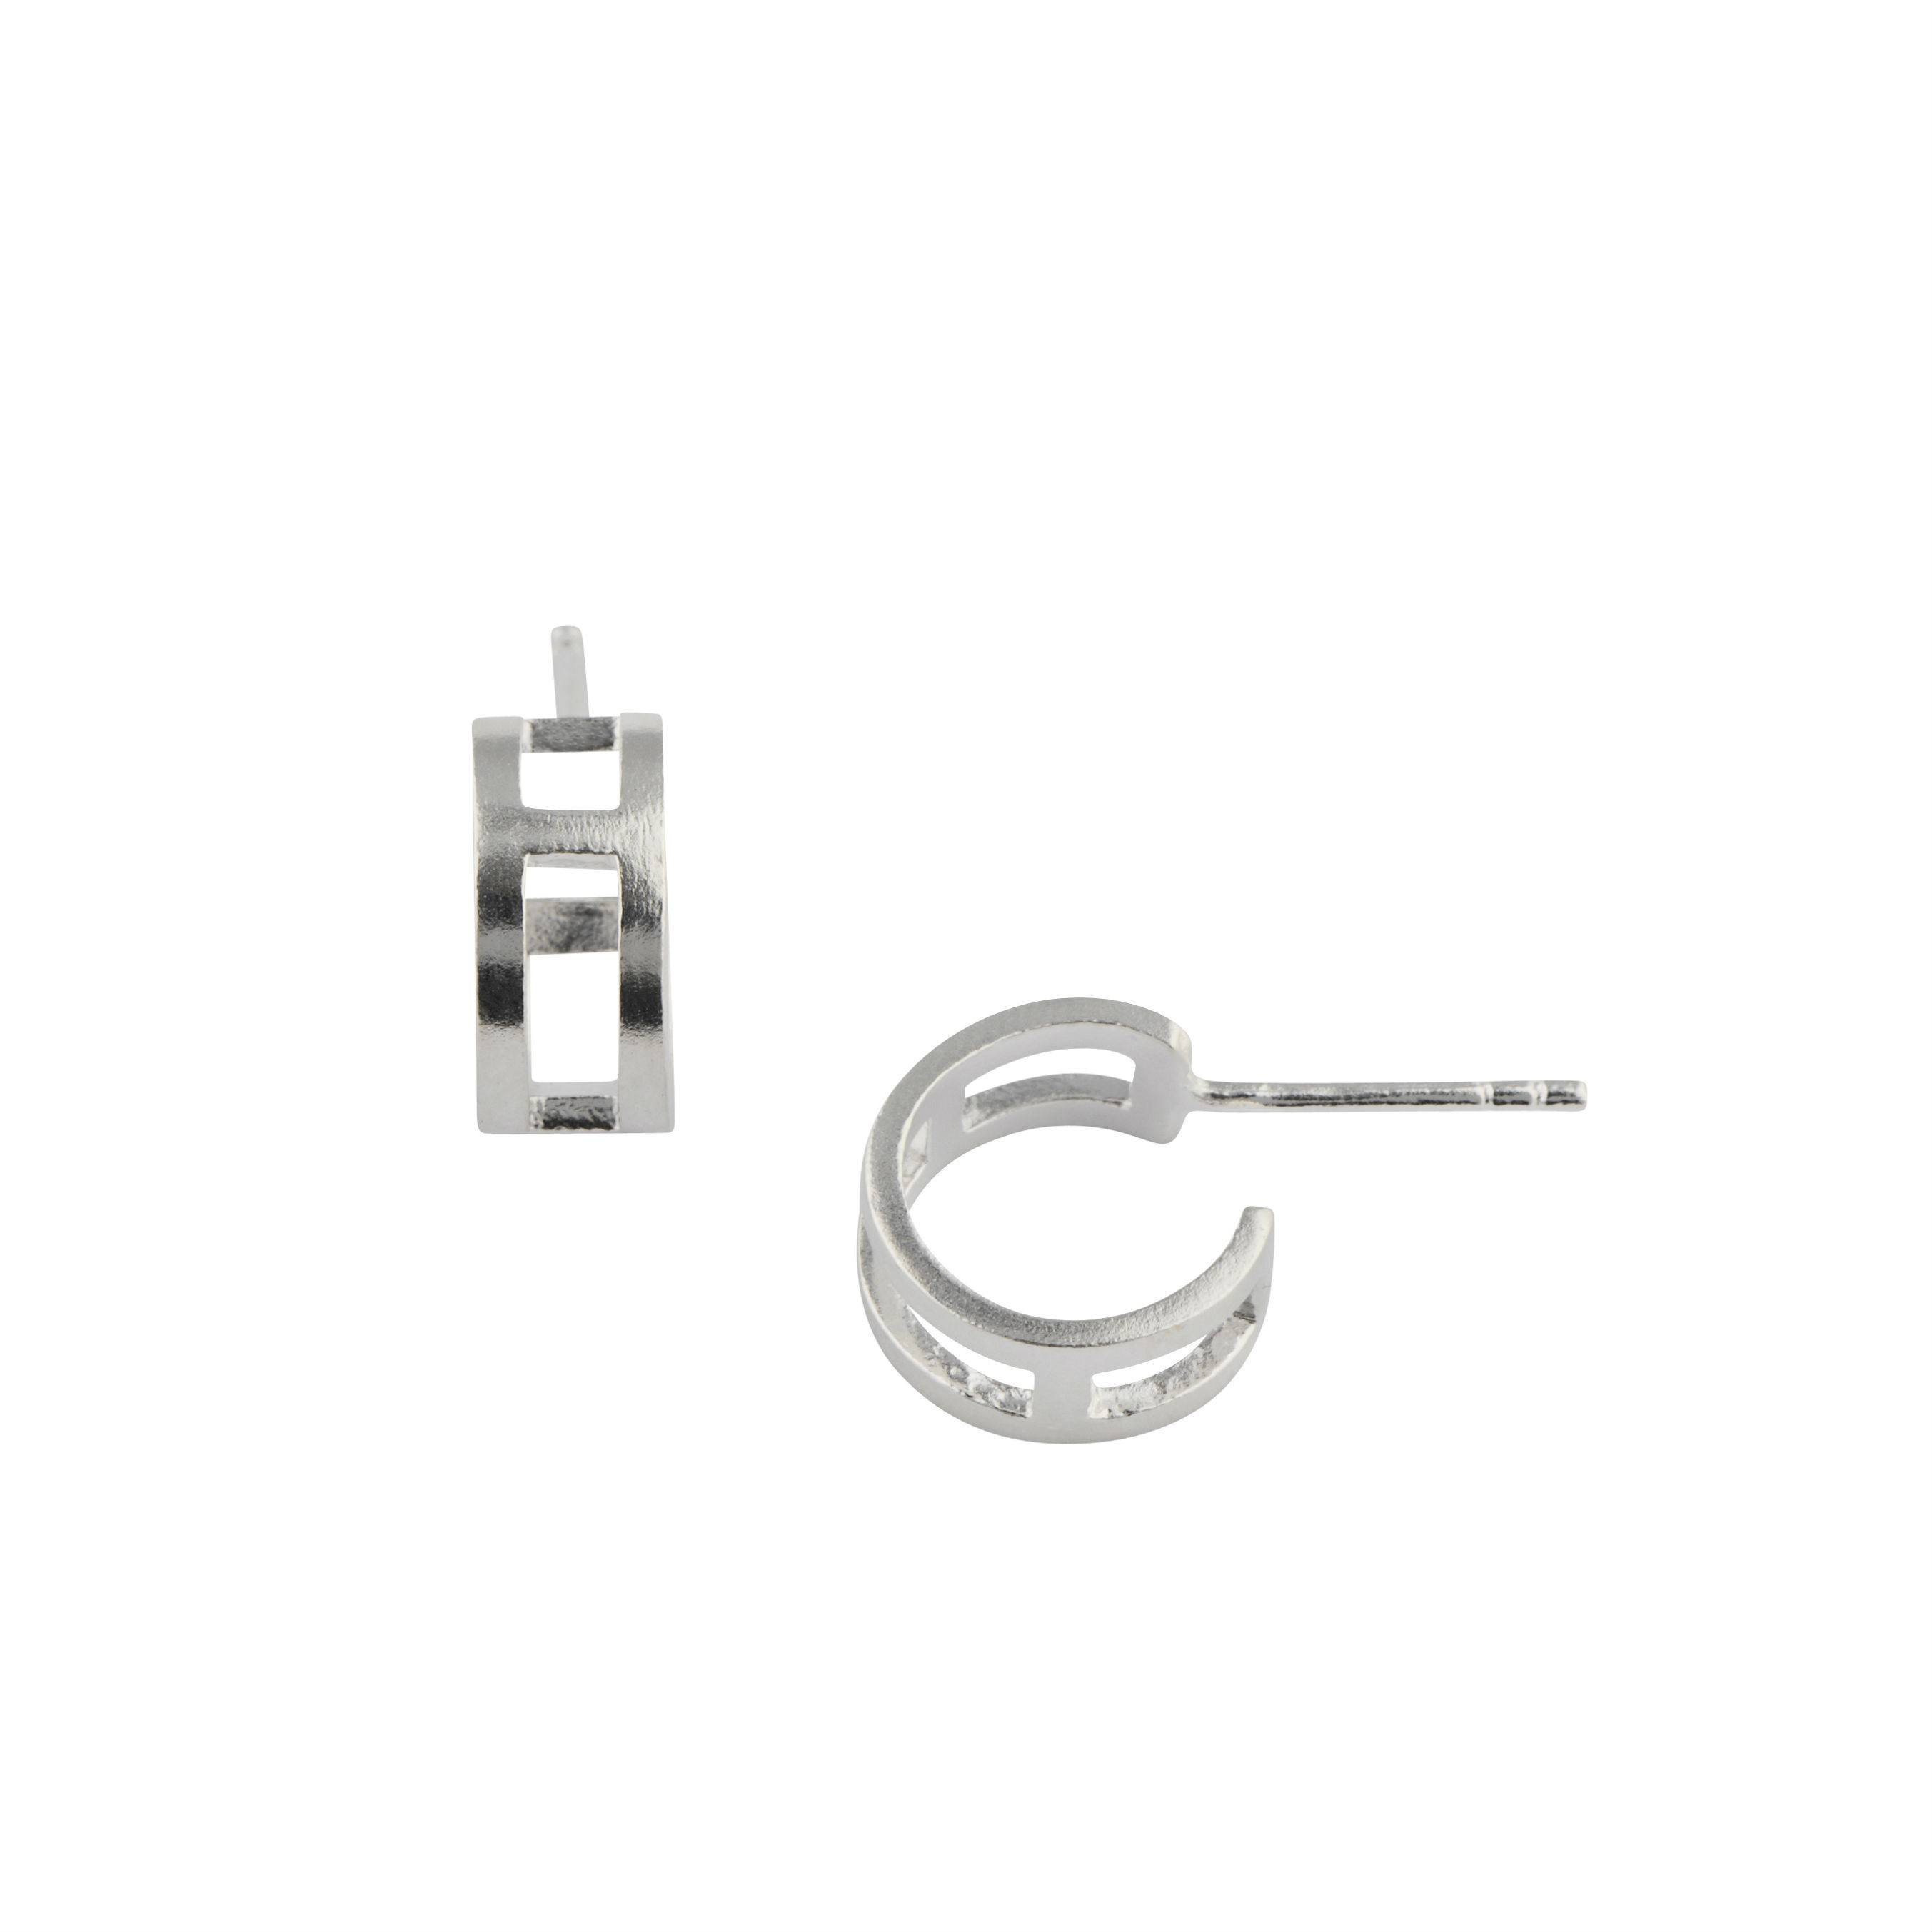 https://www.selecteddesigners.dk/media/catalog/product/v/e/vela_earring_sterling-silver.jpg